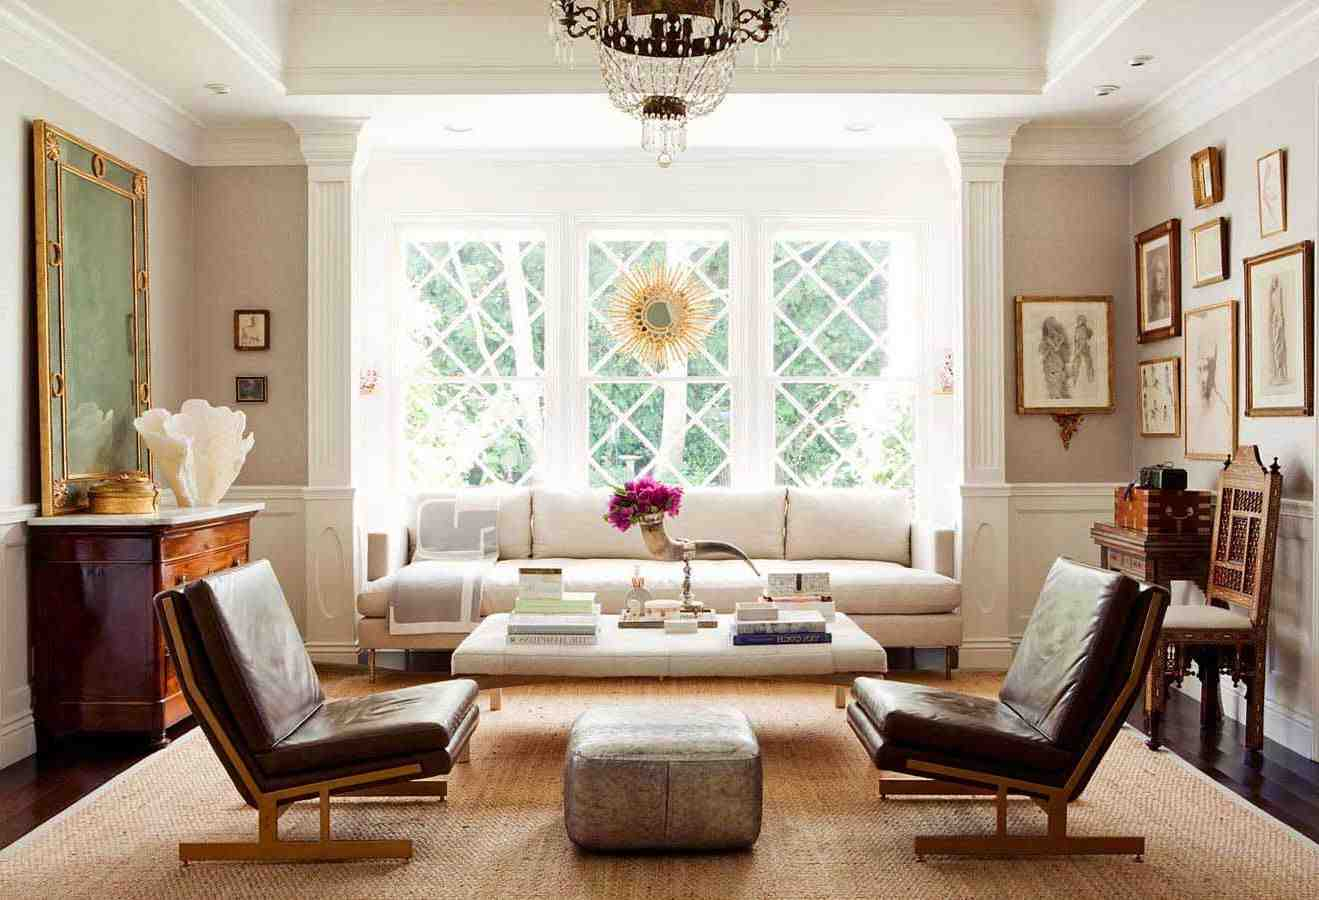 Living Room Color For Feng Shui feng shui 101: how to increase positive energy in your living room